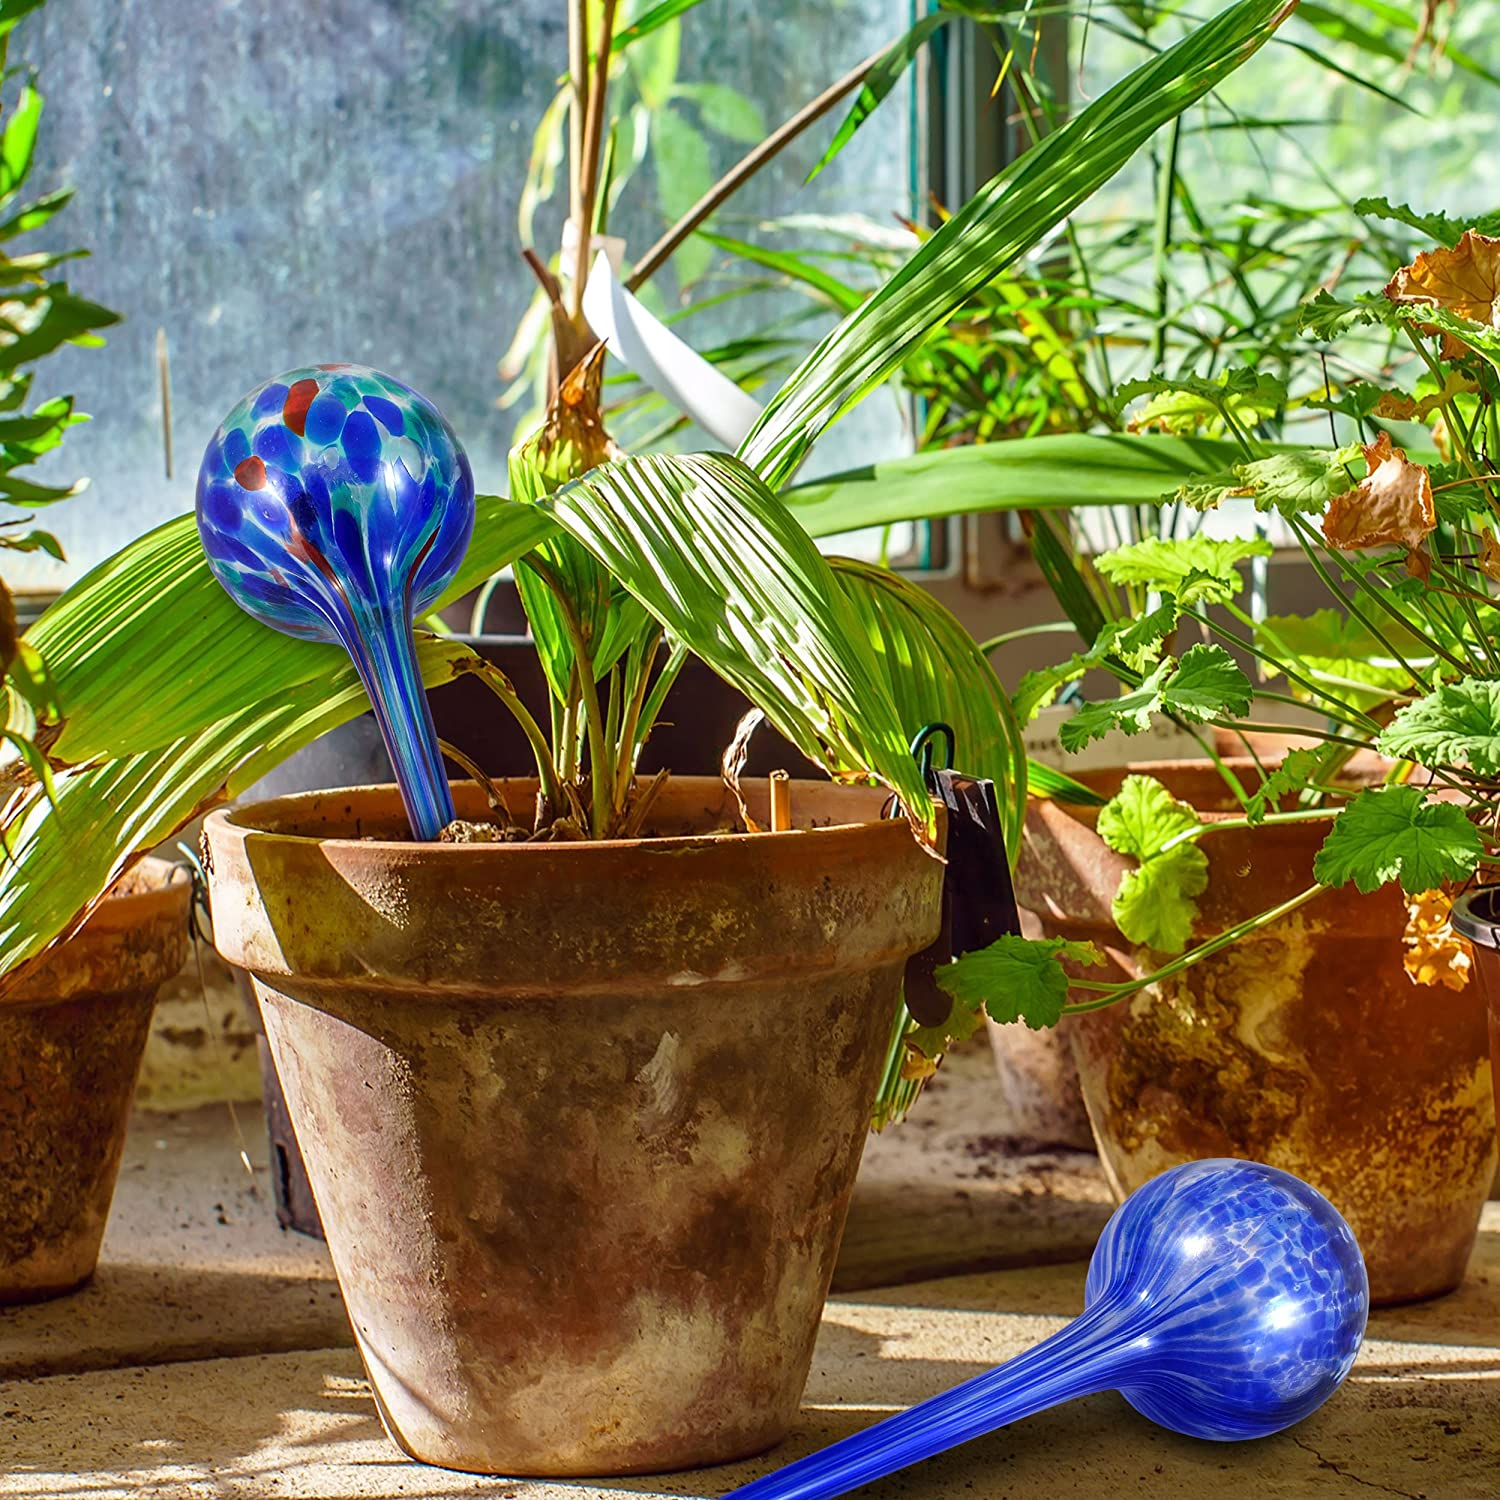 Amazon.com : Gardening Solutions Hydro Globes Automatic Watering ...